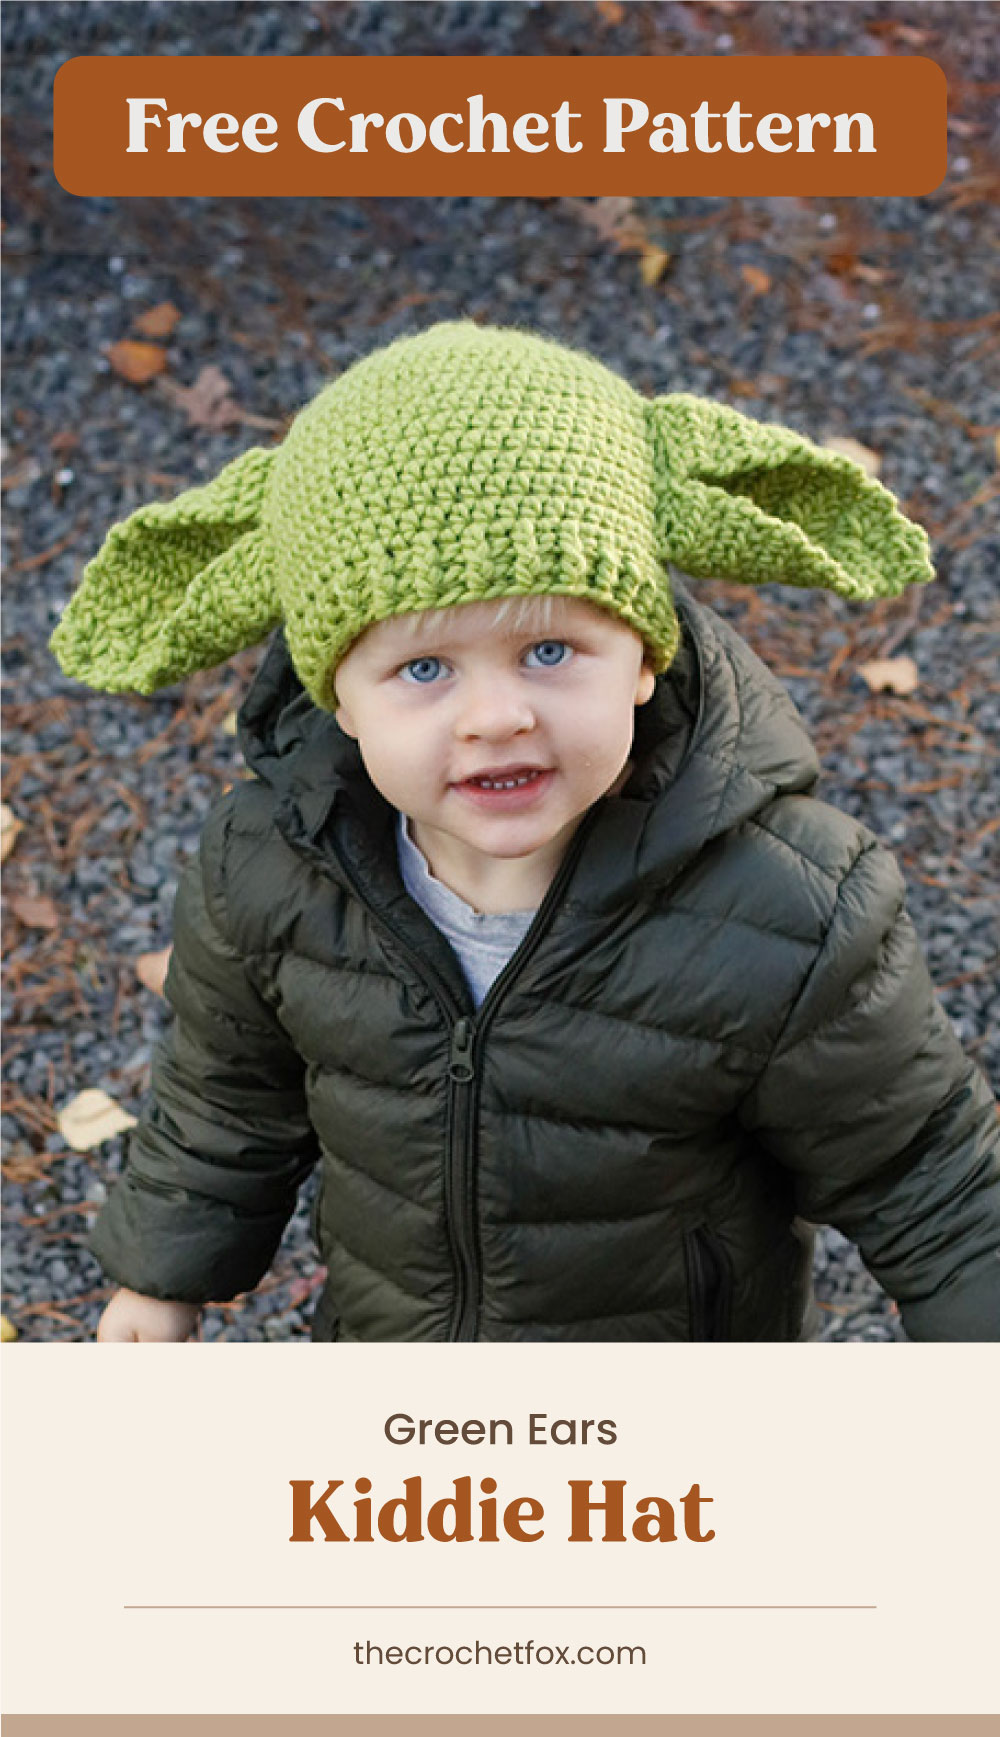 """Text area which says """"Free Crochet Pattern"""" next to a toddler wearing a green yoda-inspired crochet hat followed by another text area which says """"Green Ears Kiddie Hat, thecrochetfox.com"""""""